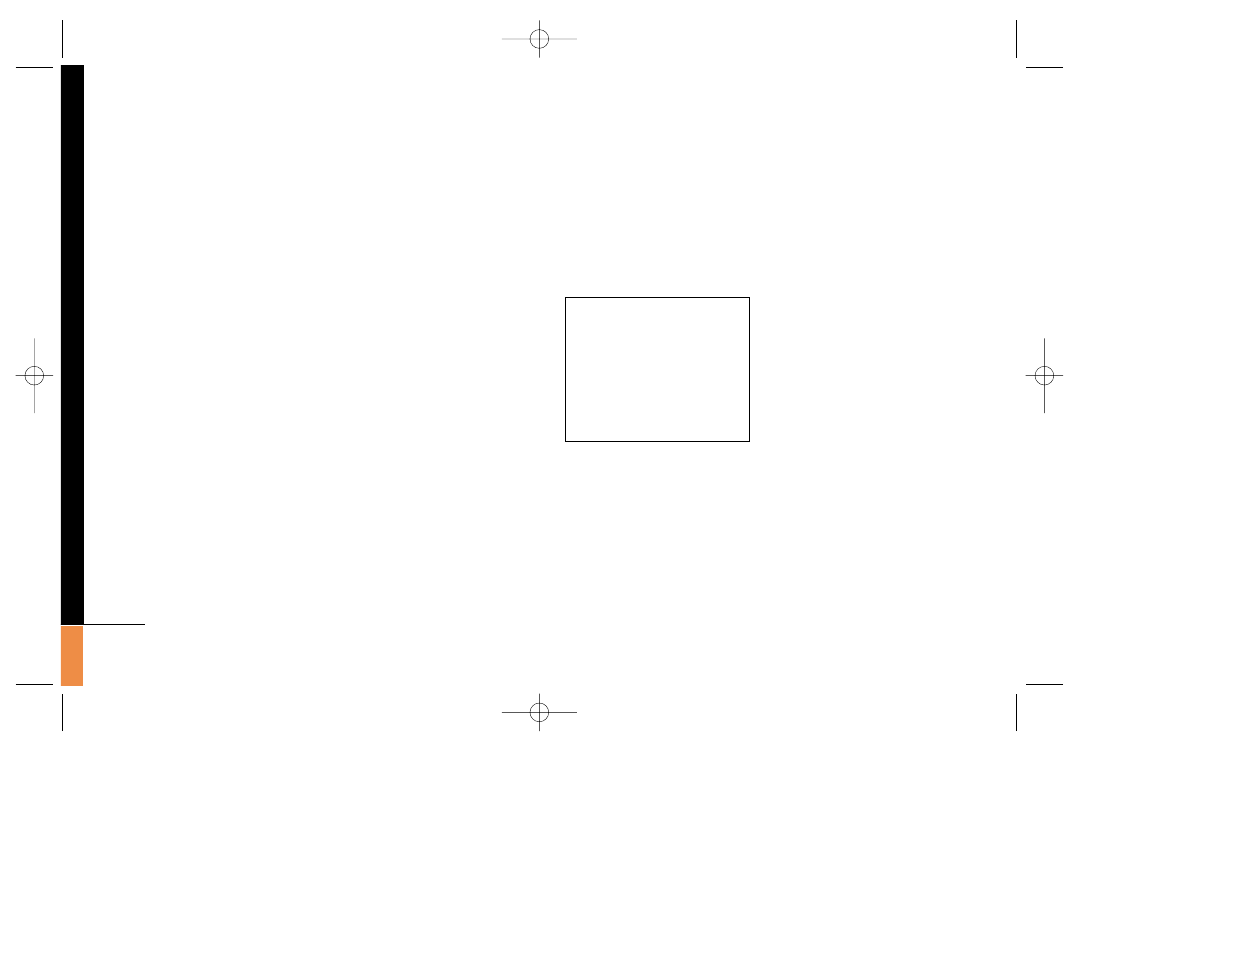 JBL P80.2 User Manual | Page 4 / 8 on